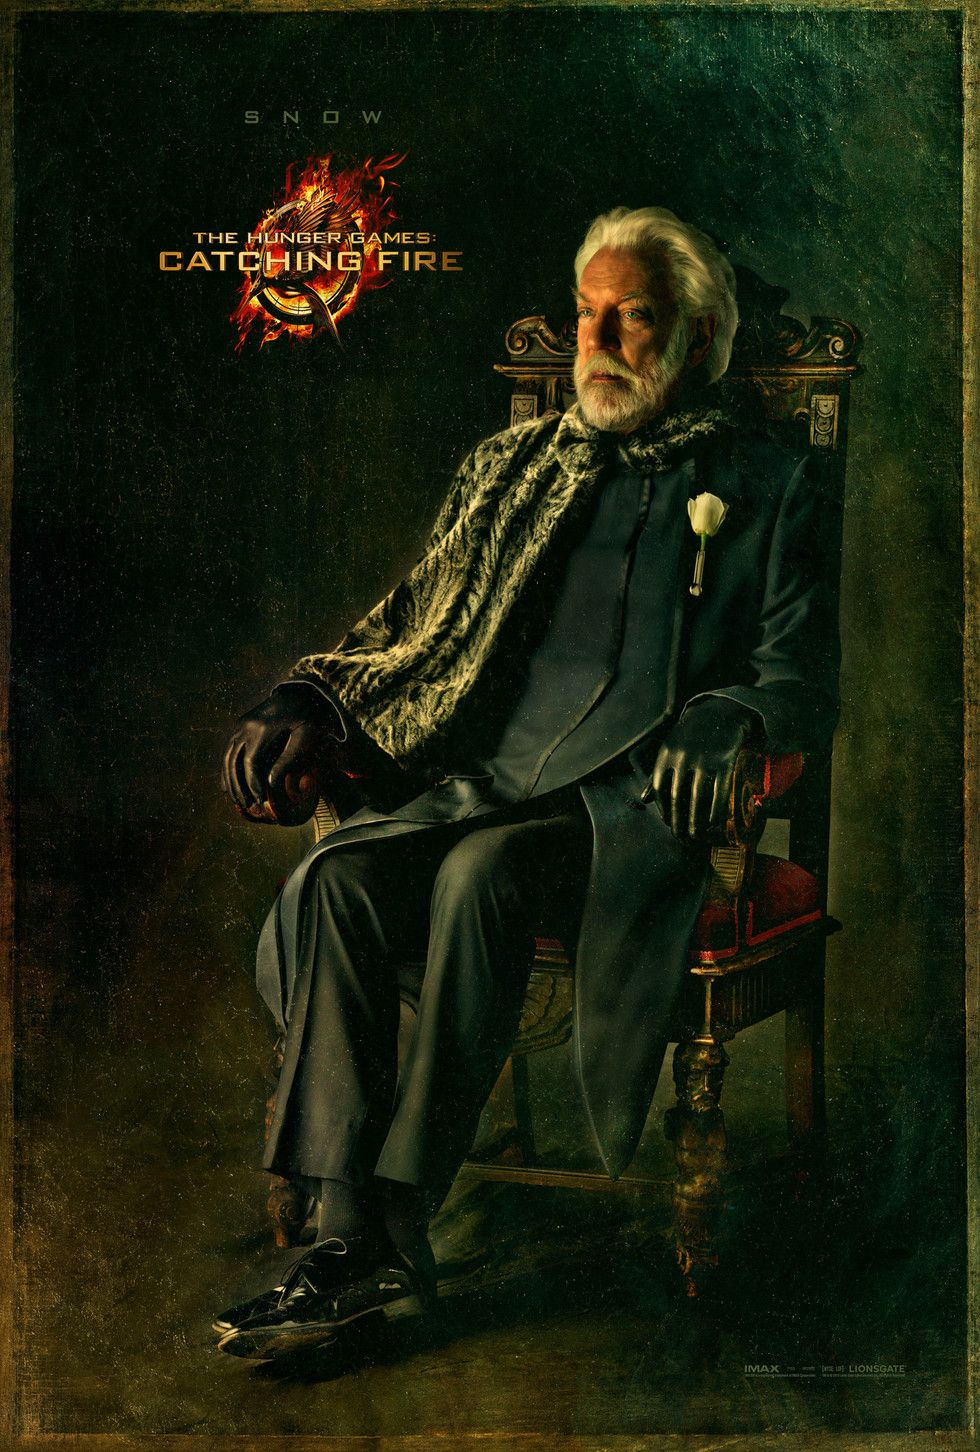 The Hunger Games: Catching Fire - Movie Poster #5